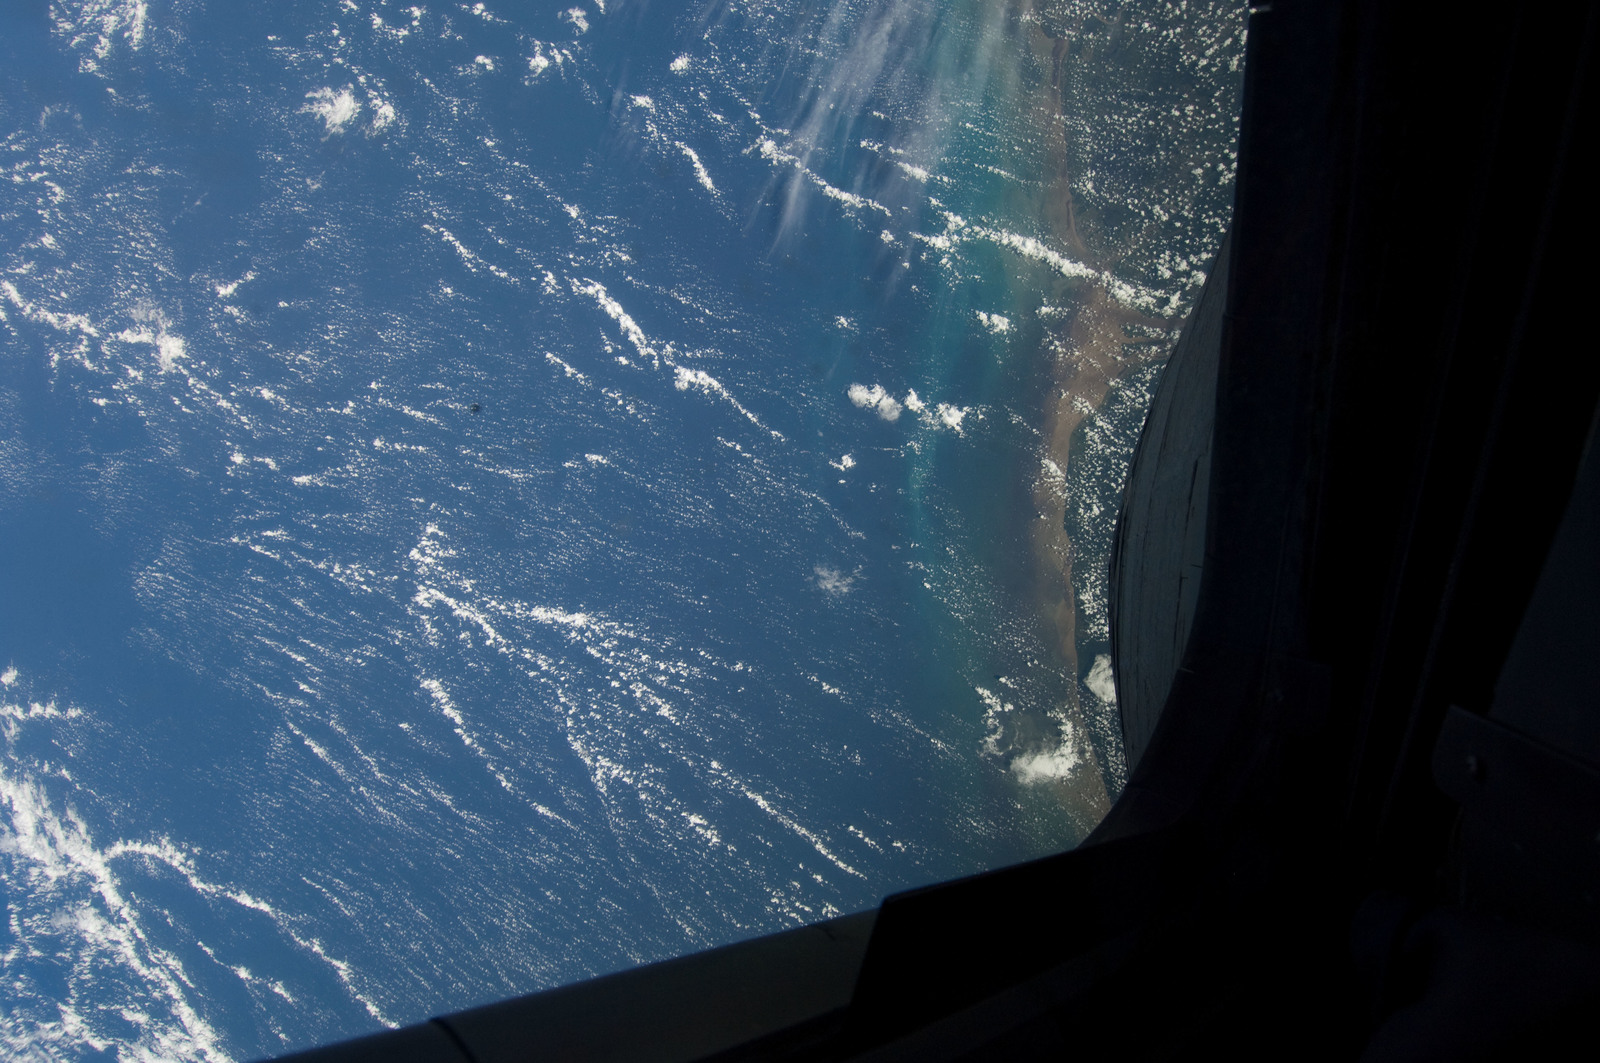 s133E006929 - STS-133 - Earth Observation taken by the STS-133 crew